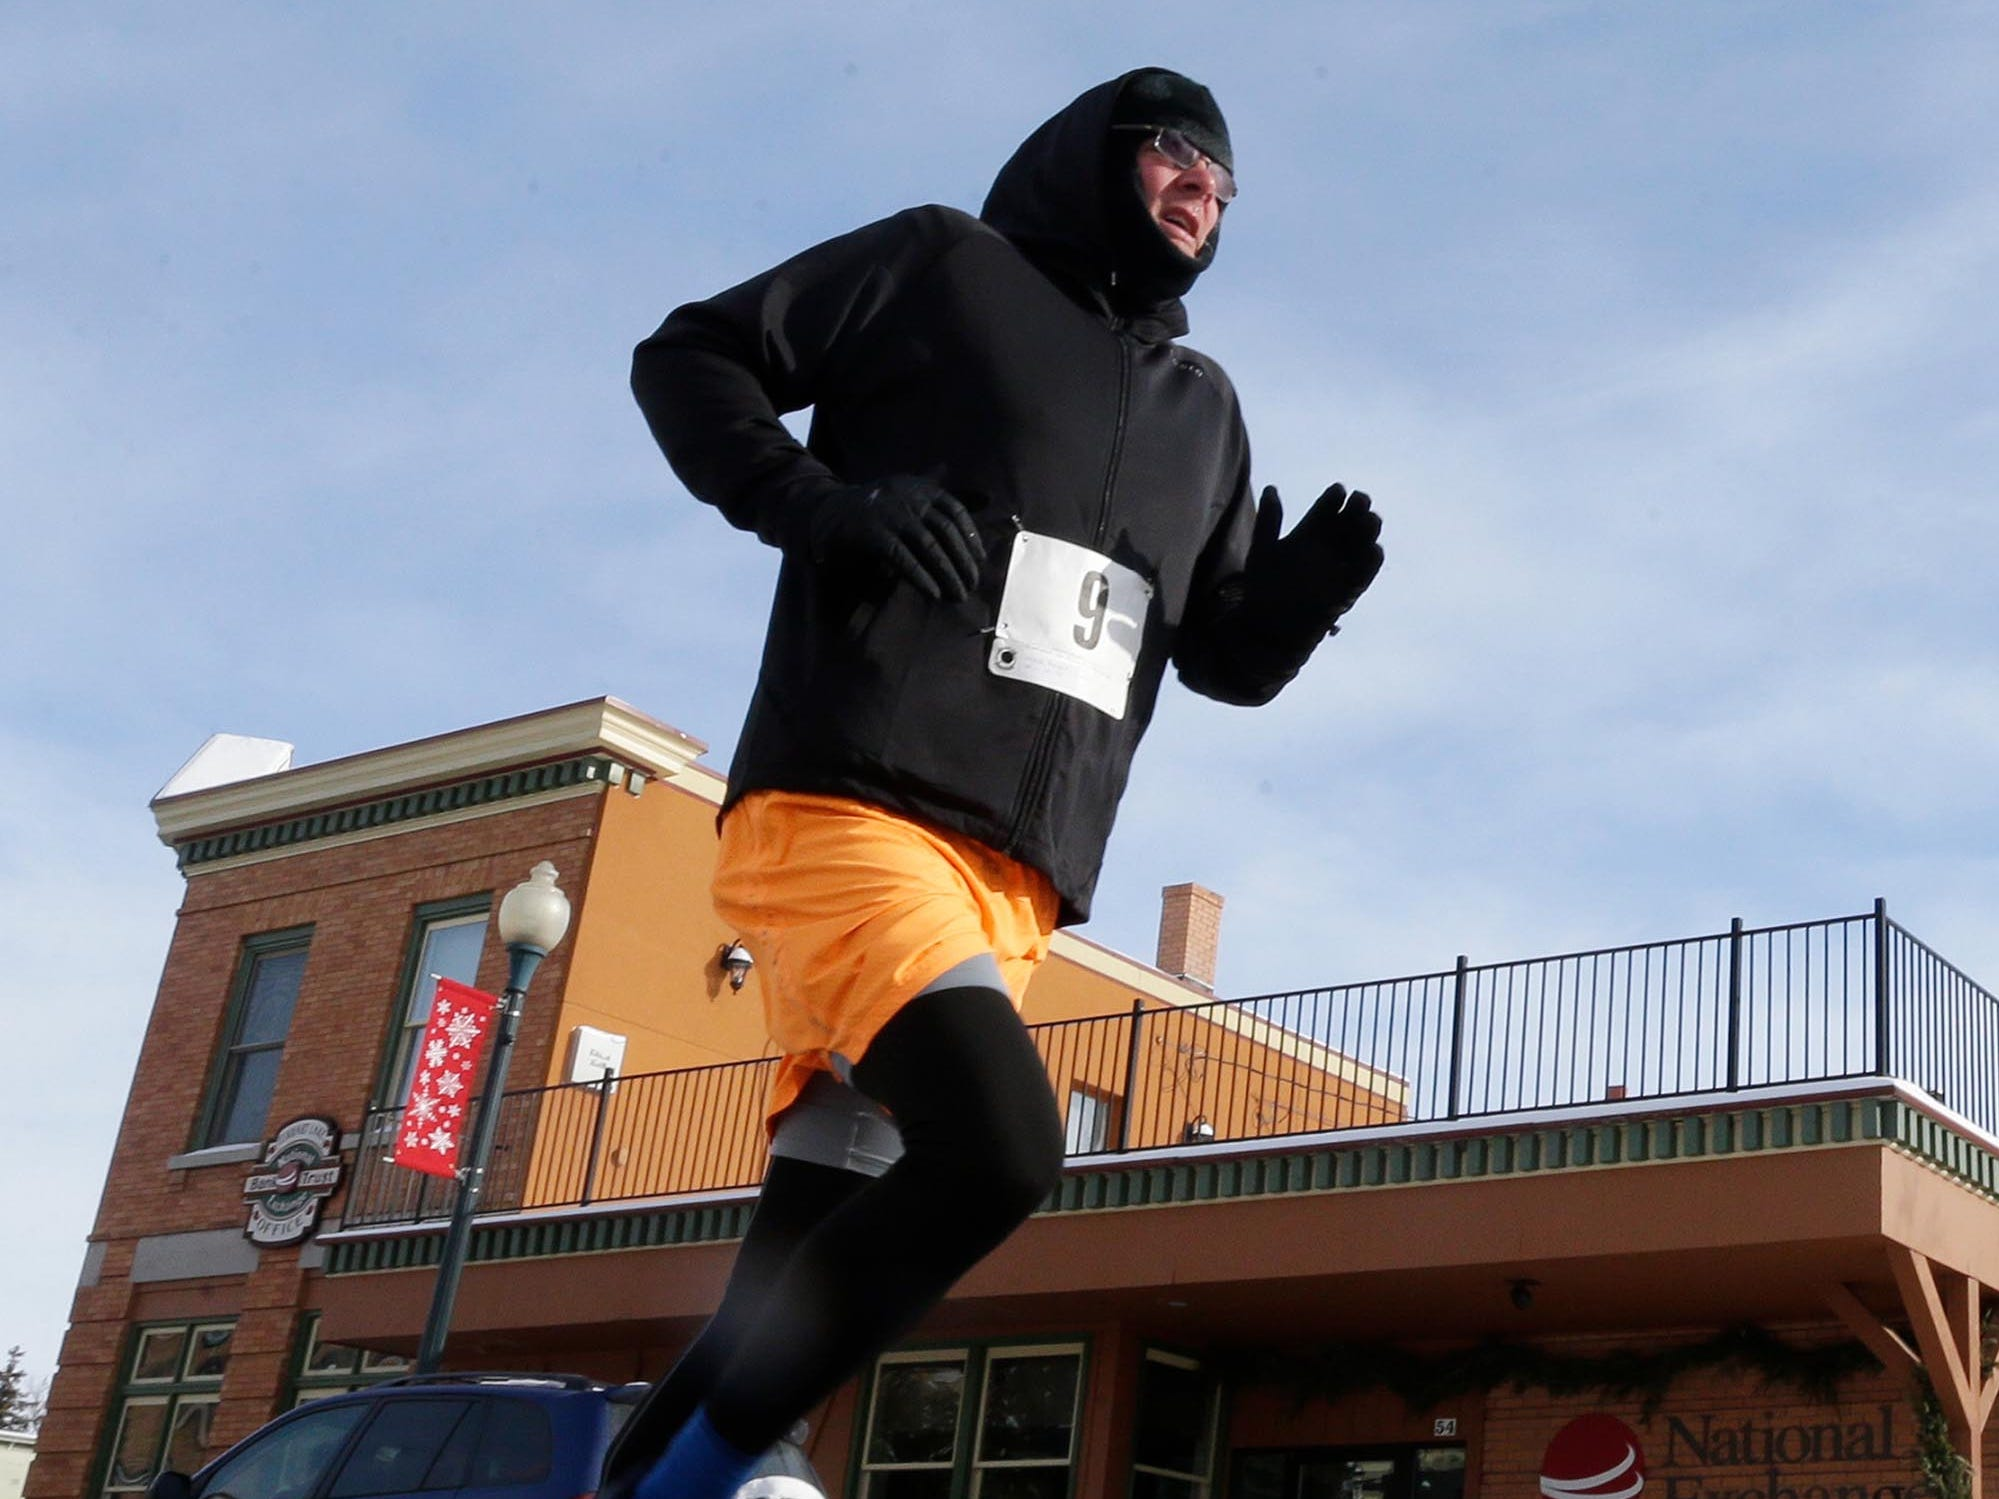 Mark Burgard (9) of Manitowoc runs the Schneelauf Run, Saturday, January 26, 2019, in Elkhart Lake, Wis. Burgard took first place with a time of 13:59 for the two-mile event.